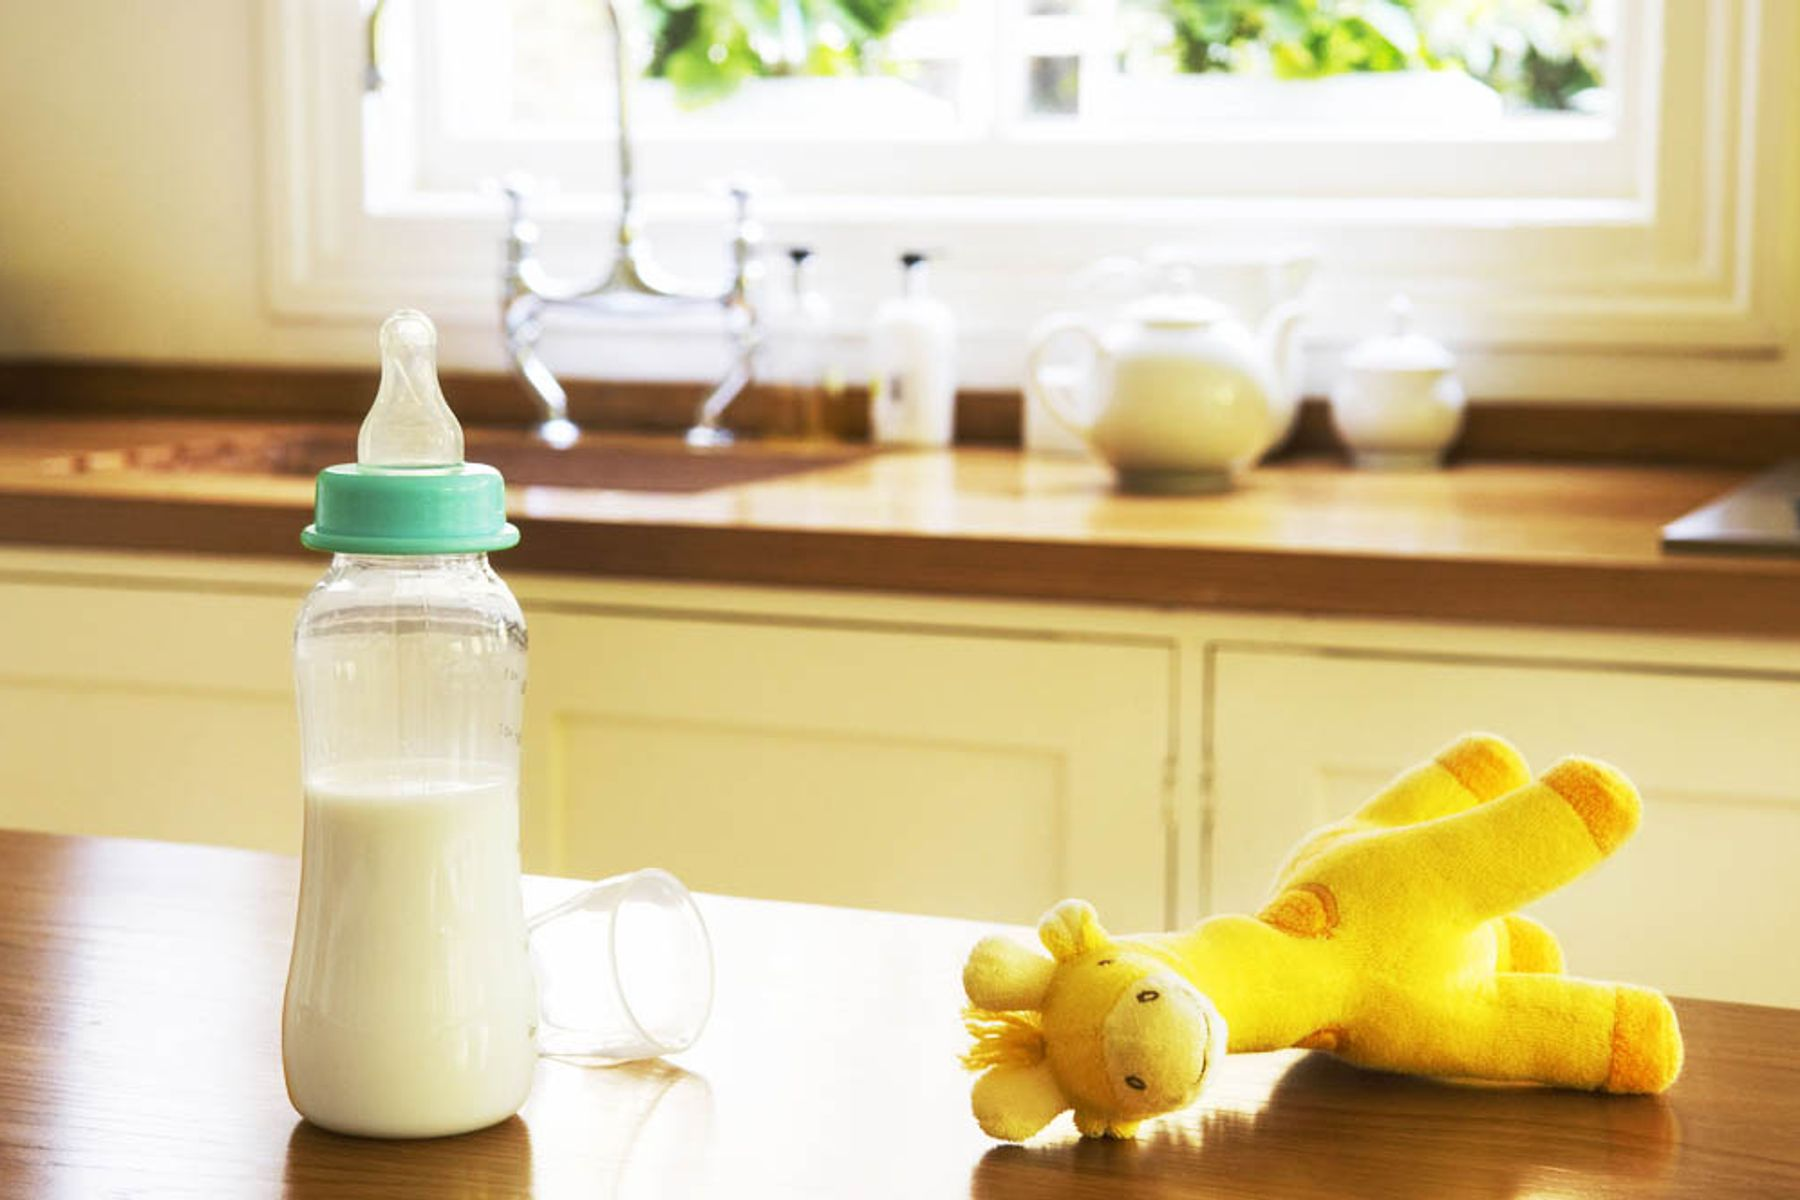 bottle of milk and giraffe toy in a kitchen